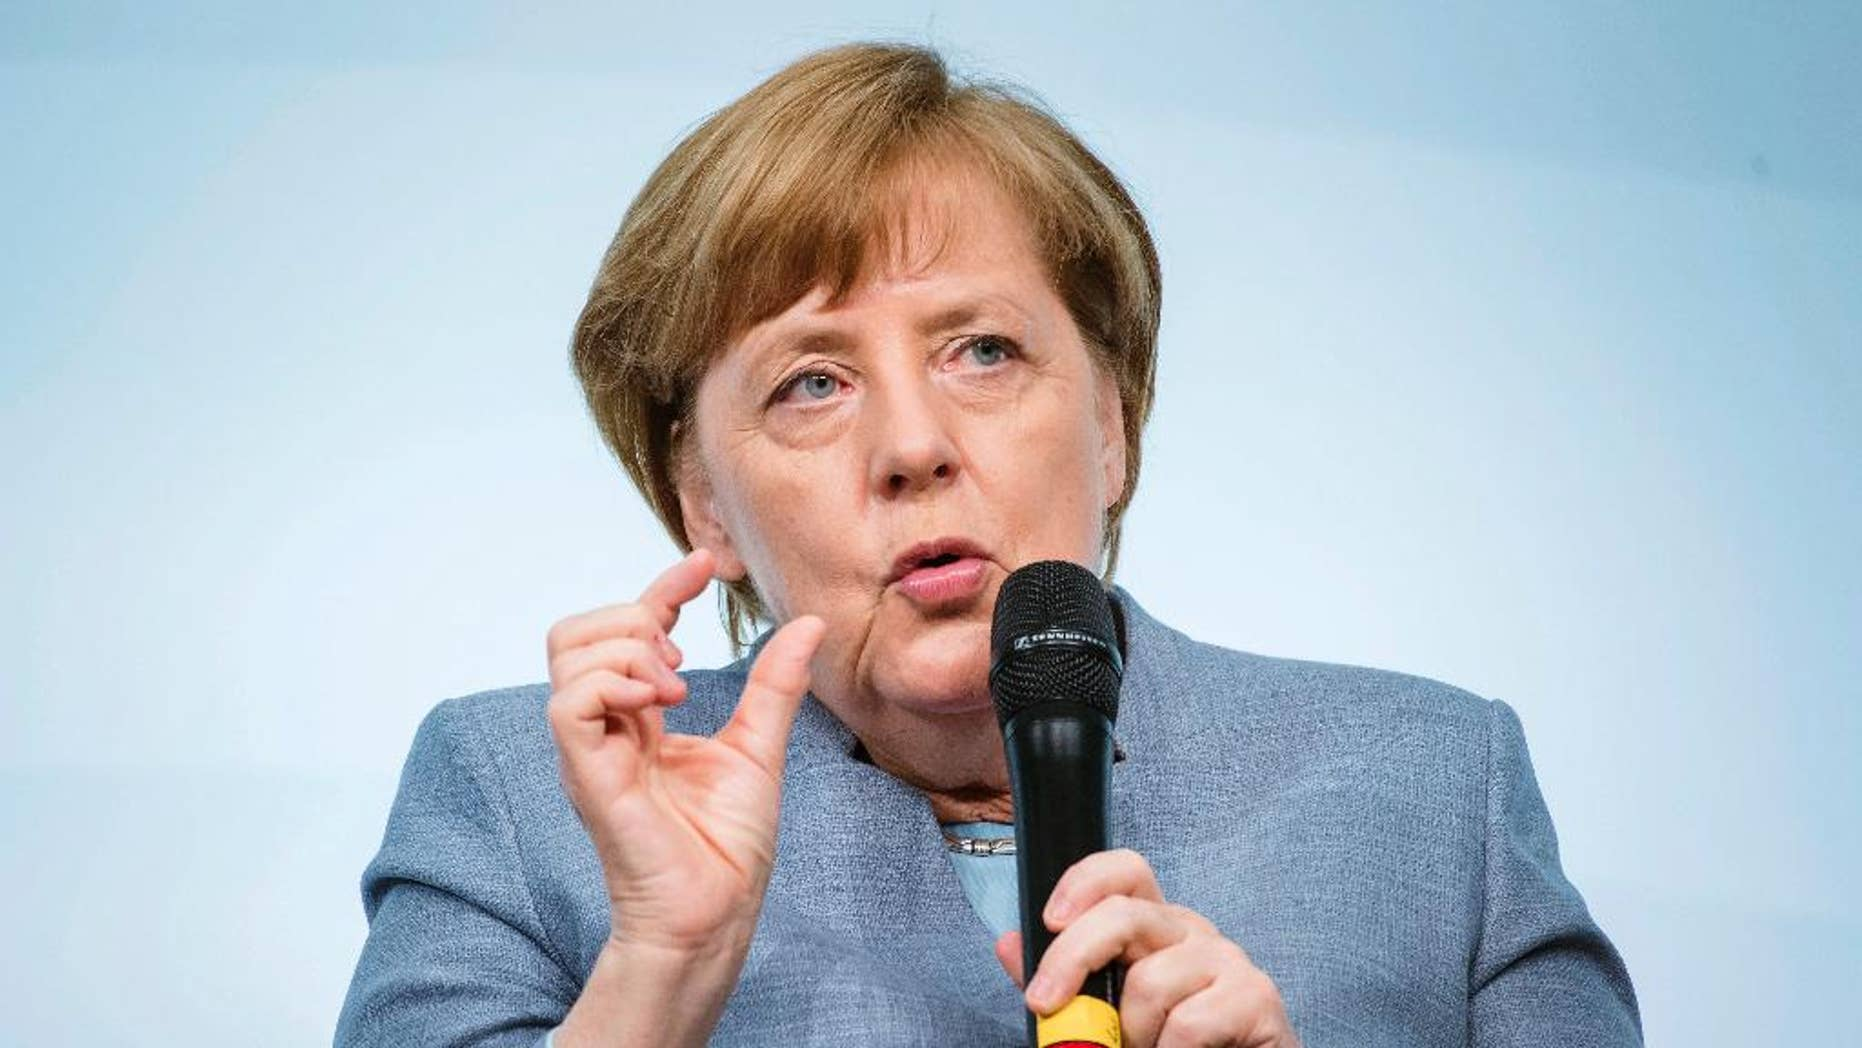 German Chancellor Angela Merkel speaks at the W20 Summit in Berlin, Germany, Wednesday, April 26, 2017. The conference aims at building support for investment in women's economic empowerment programs. (Gregor Fischer/dpa via AP)